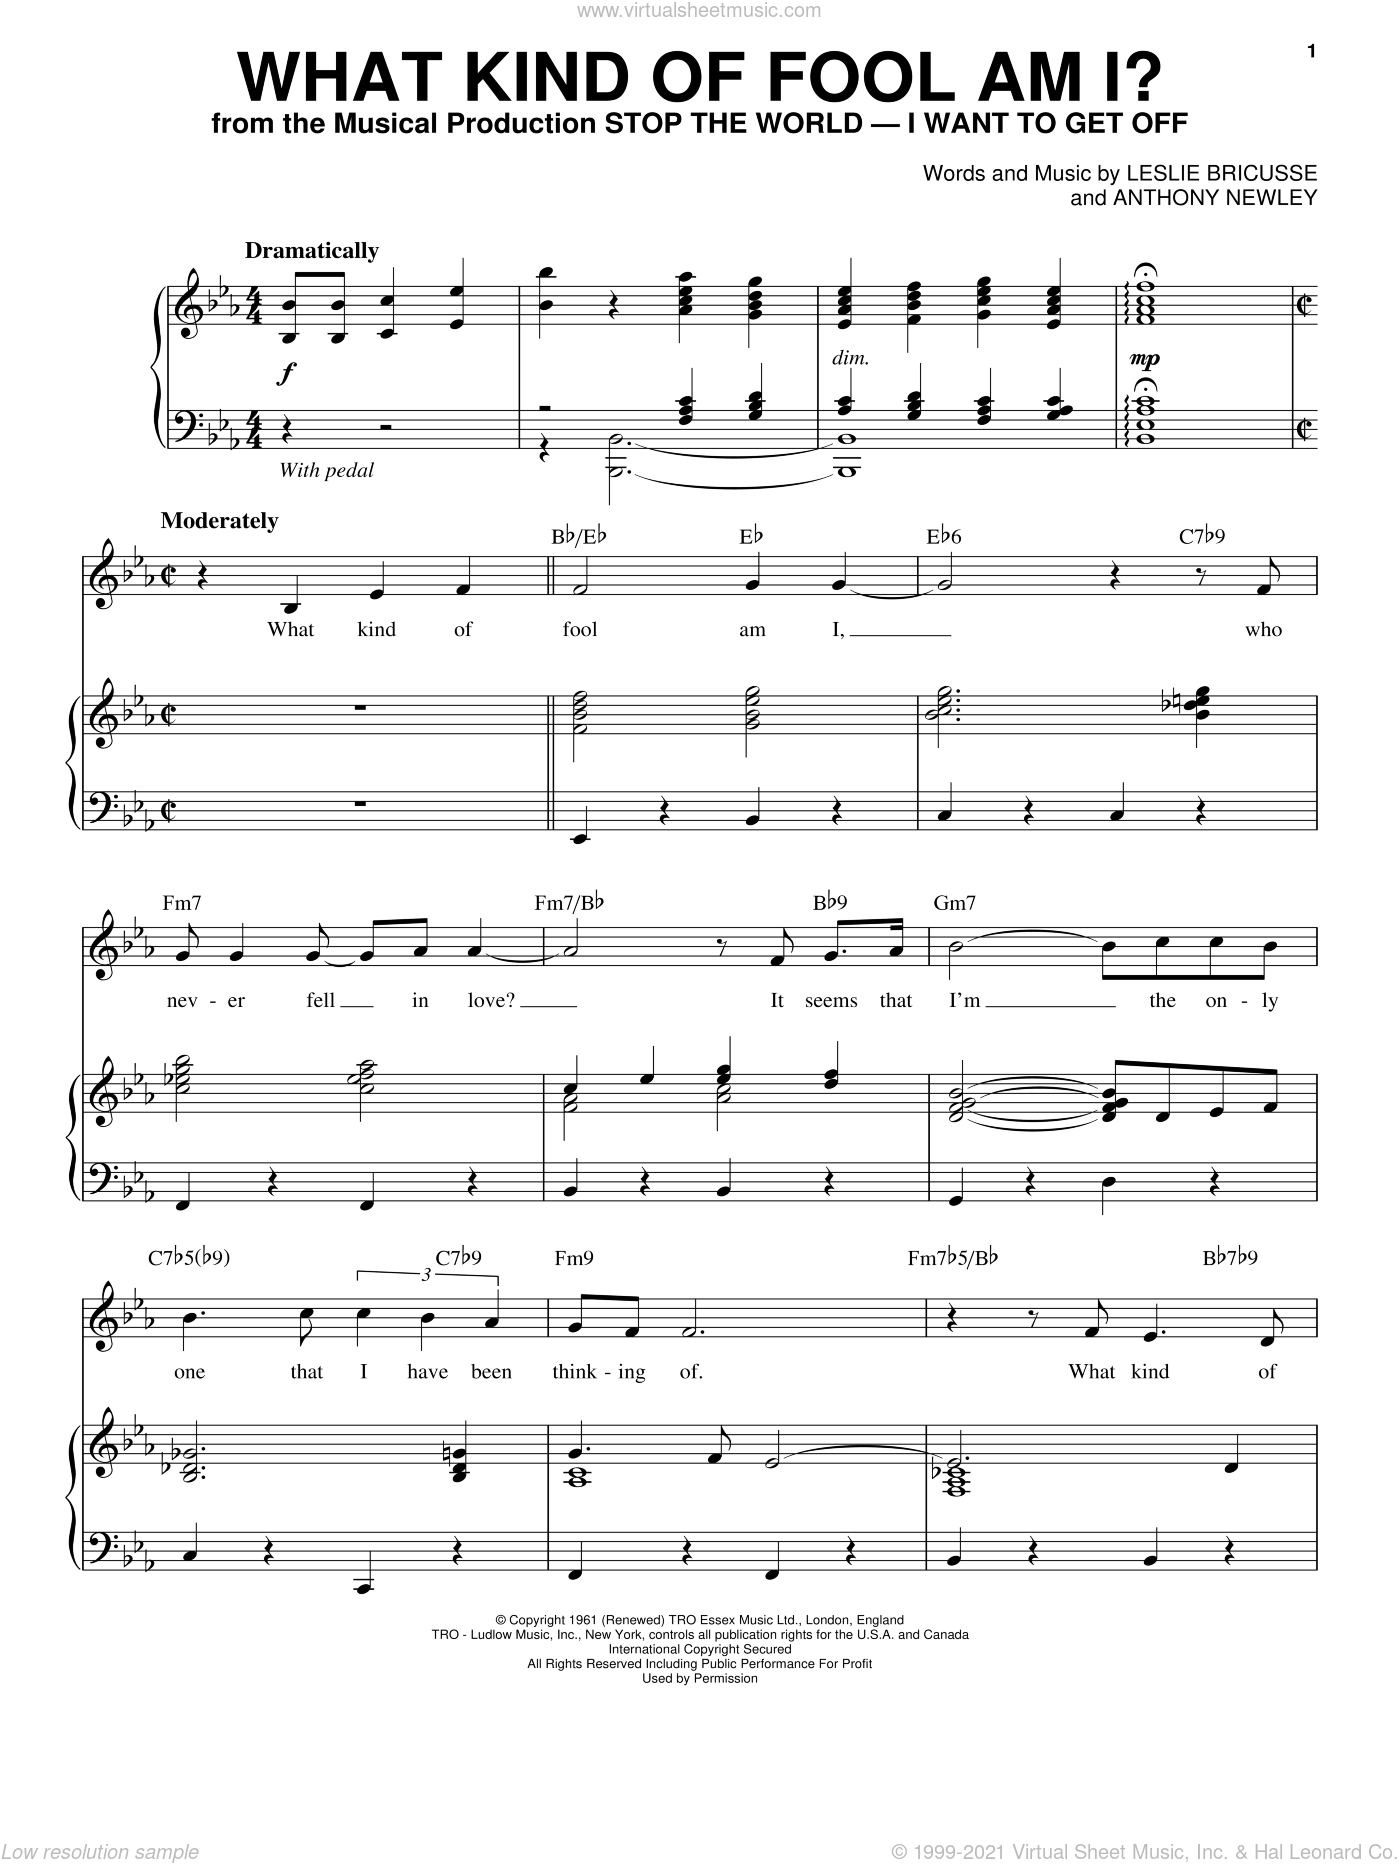 What Kind Of Fool Am I? sheet music for voice and piano by Leslie Bricusse